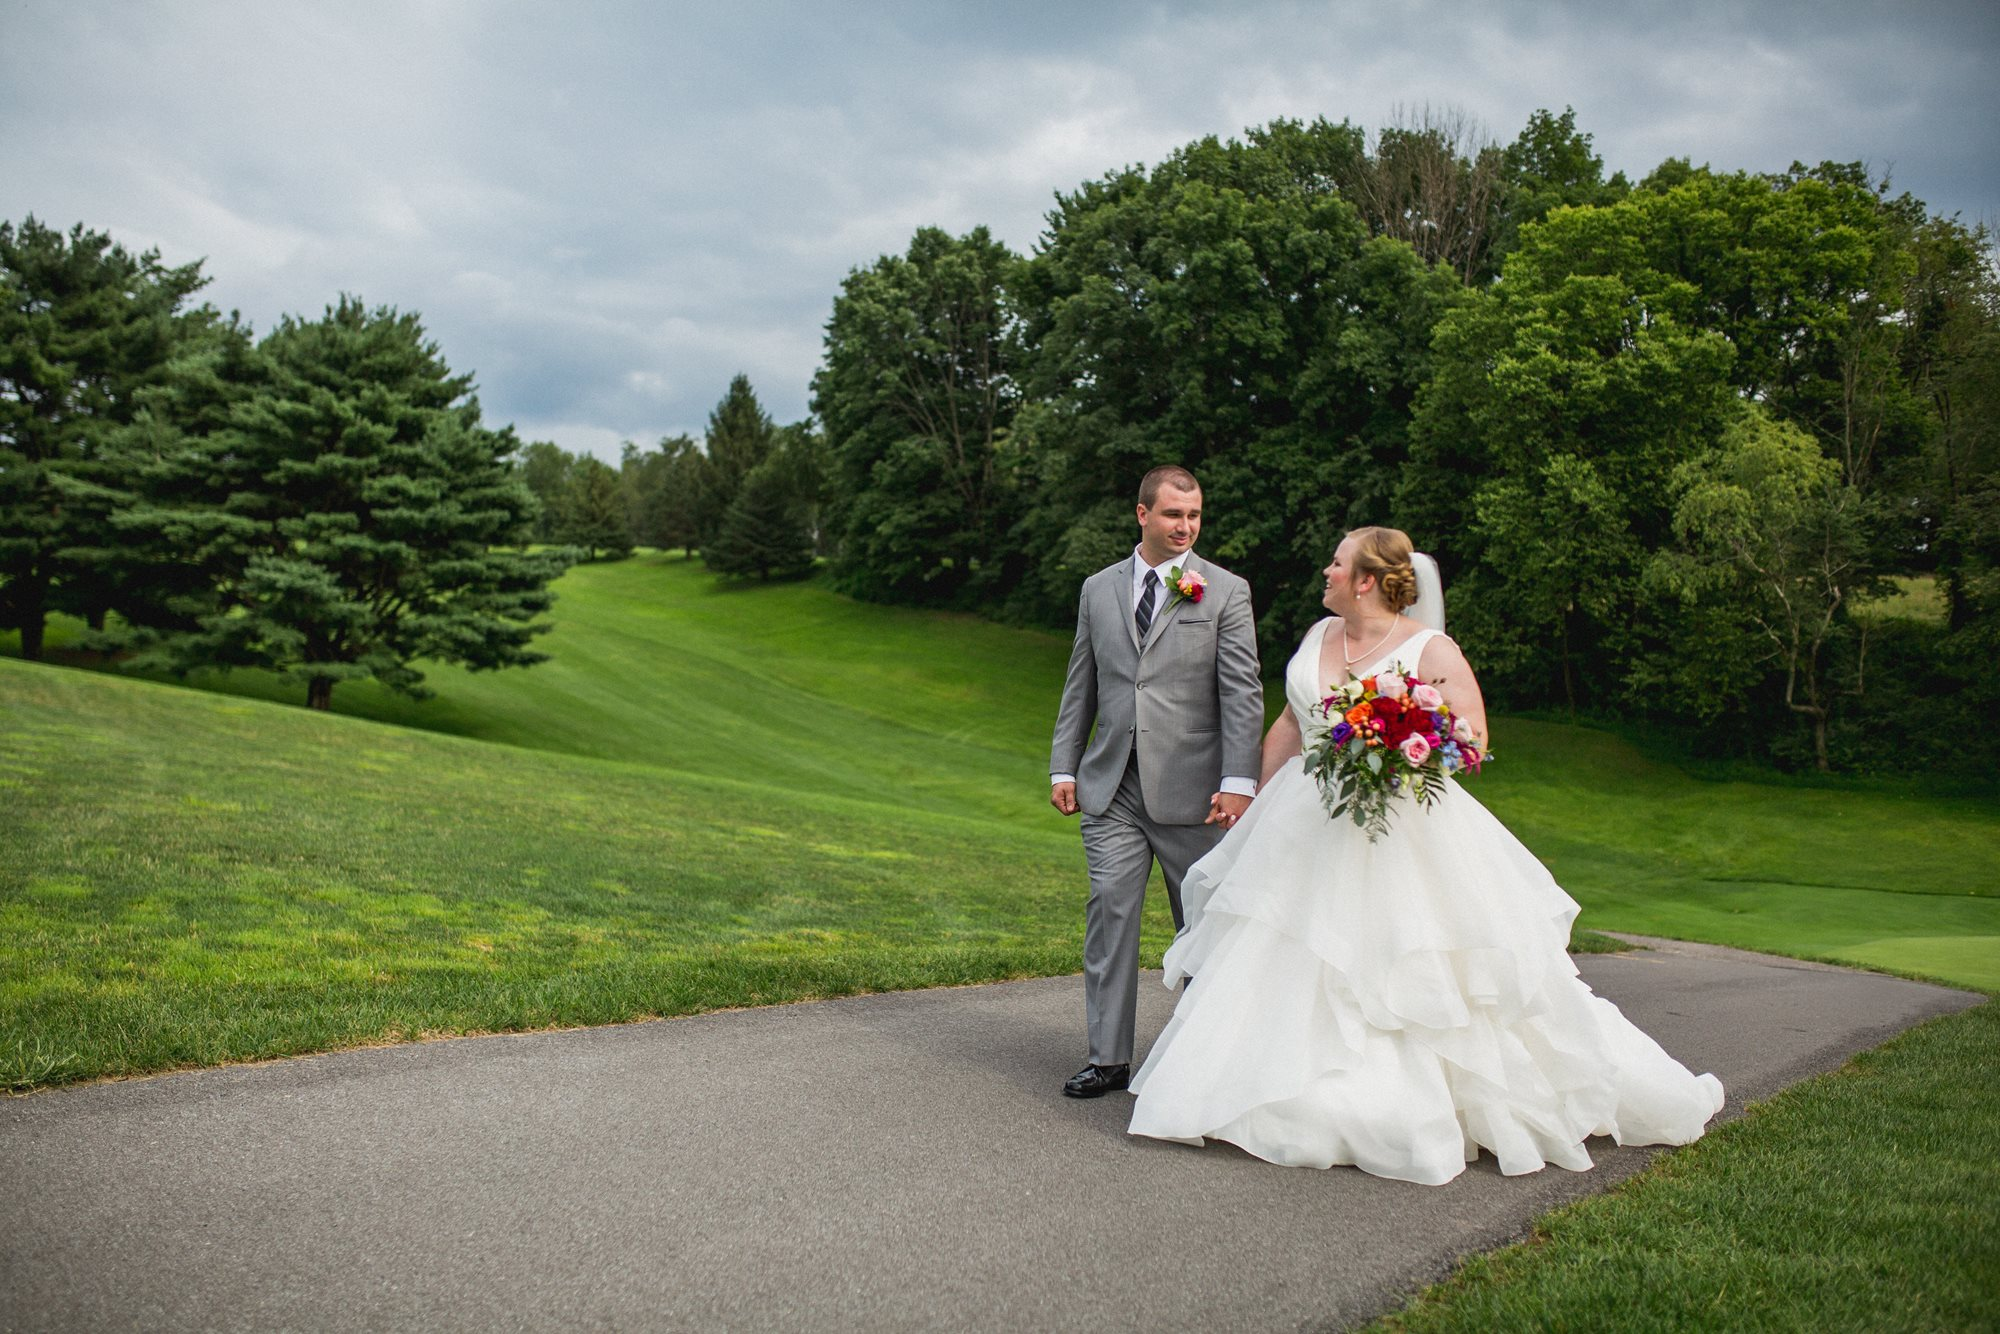 Marissa_and_Tyler_s_Wedding-6_Bride_and_Groom-0014